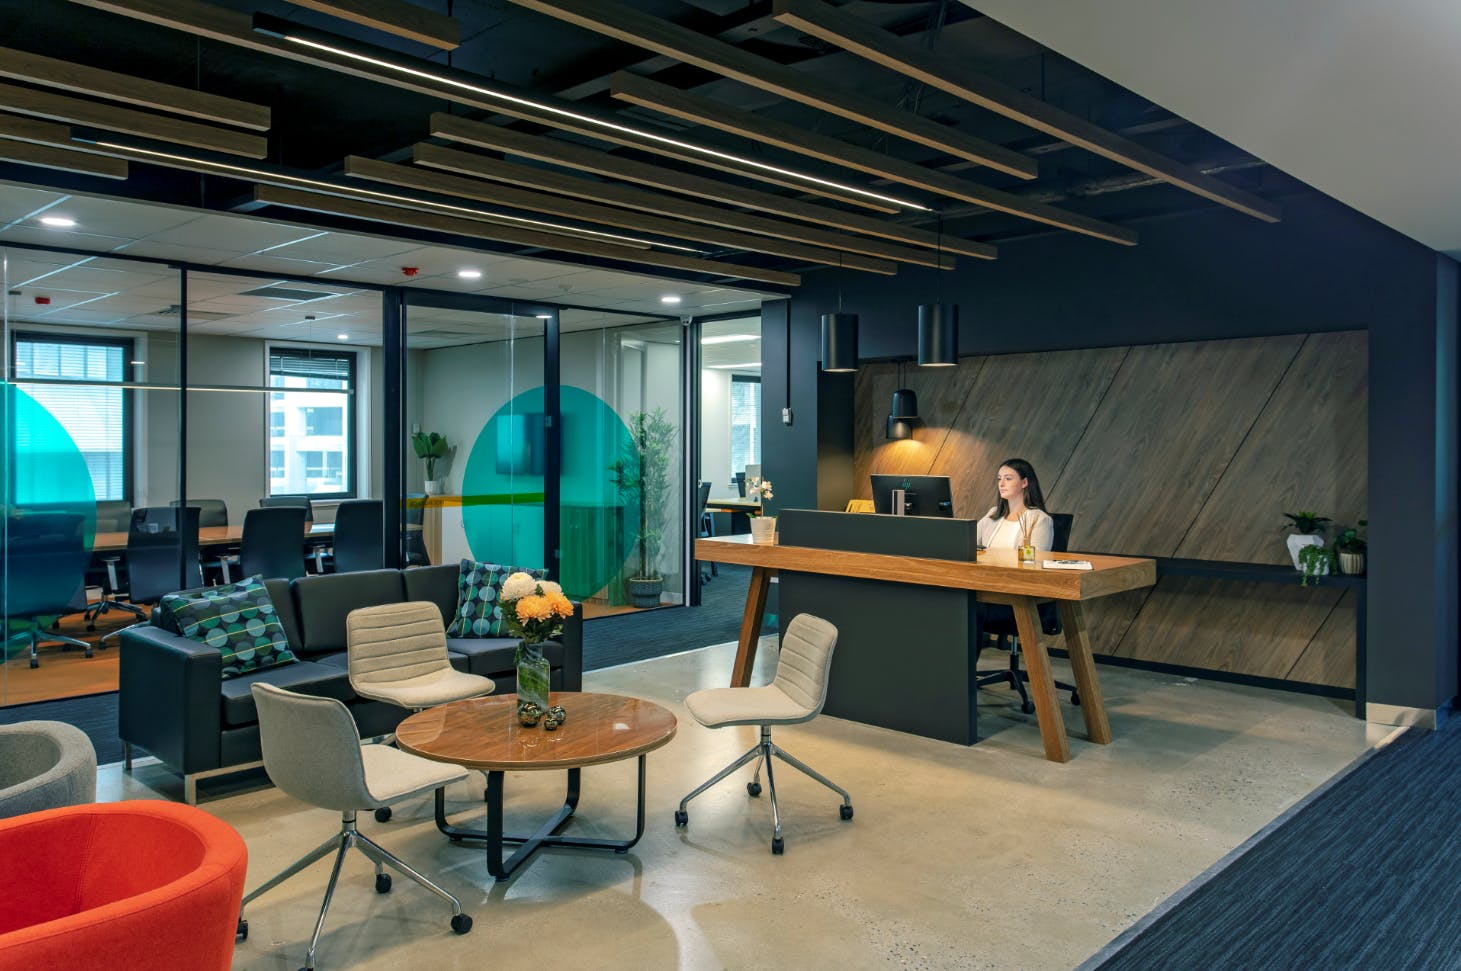 Meeting Room 2, meeting room at Spot Co-Working, image 5